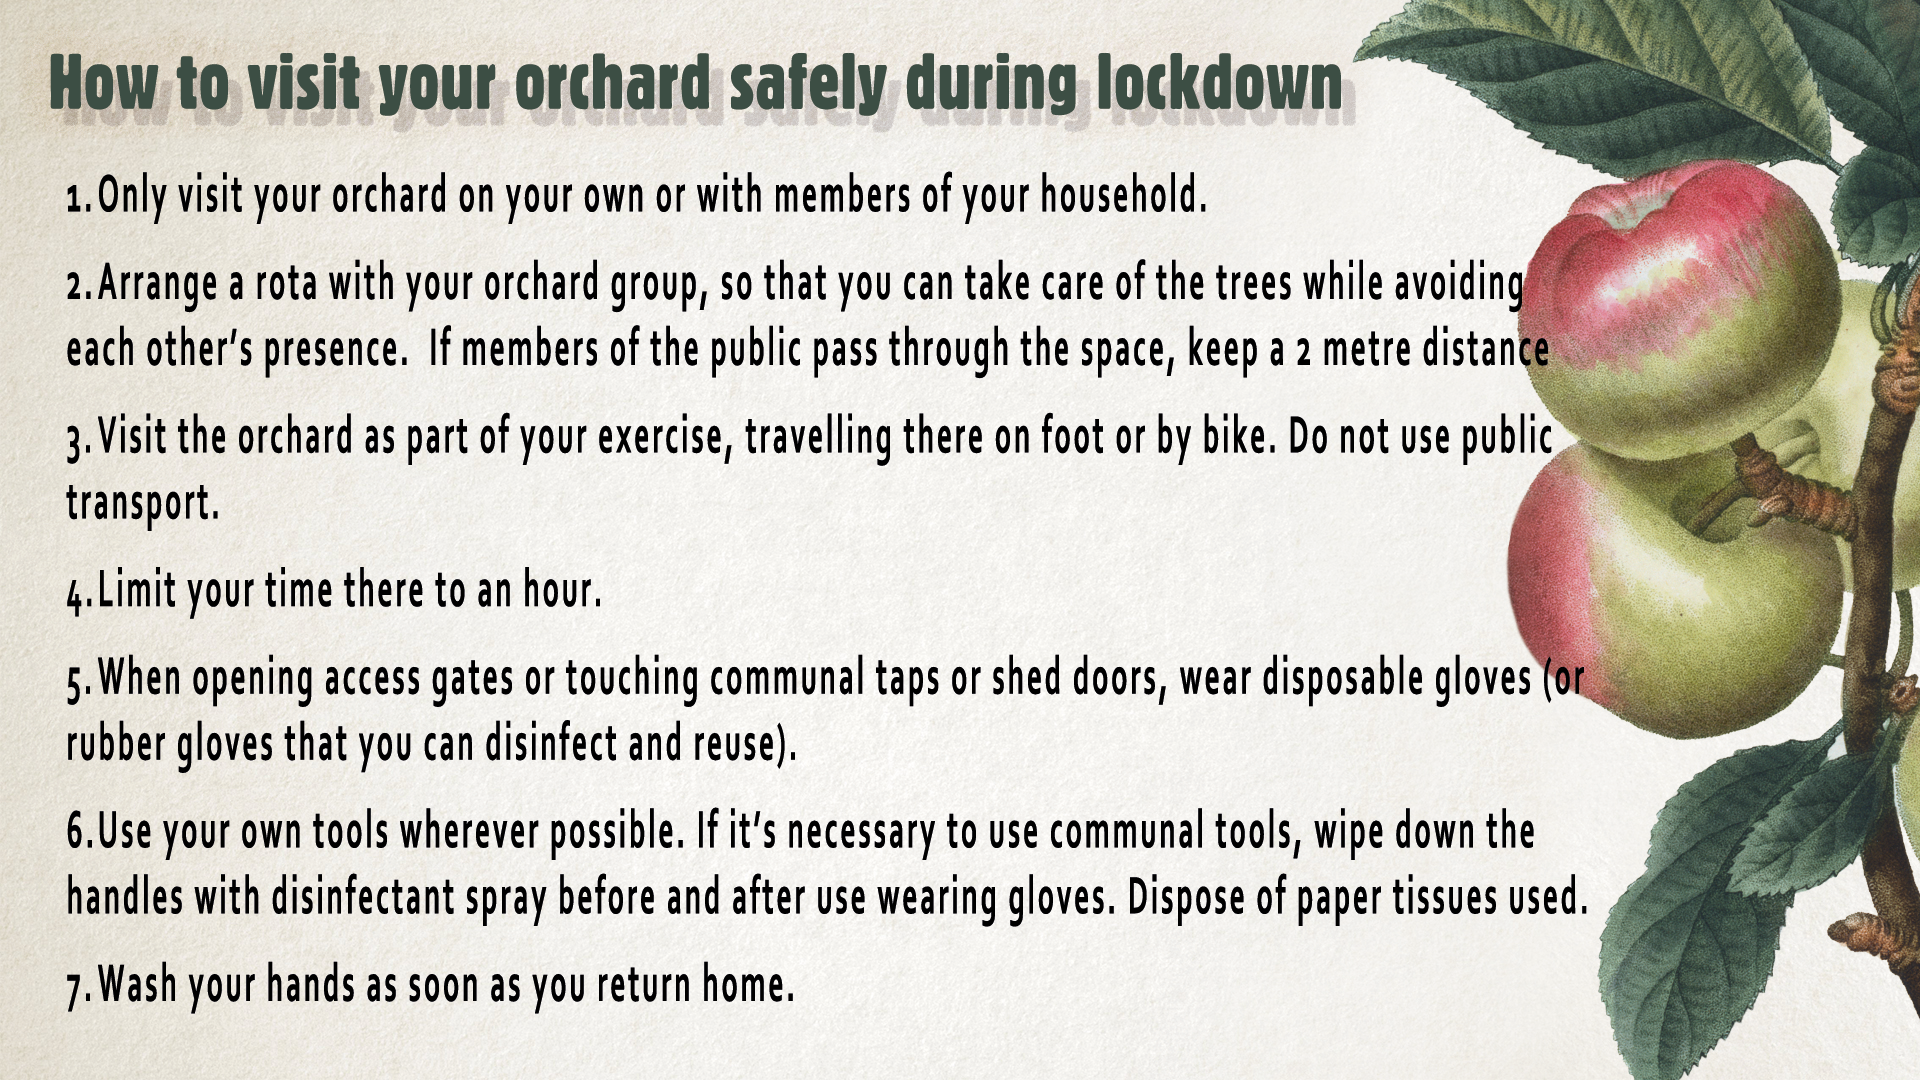 Lockdown_Visit your orchard safely Graphic_April 2020